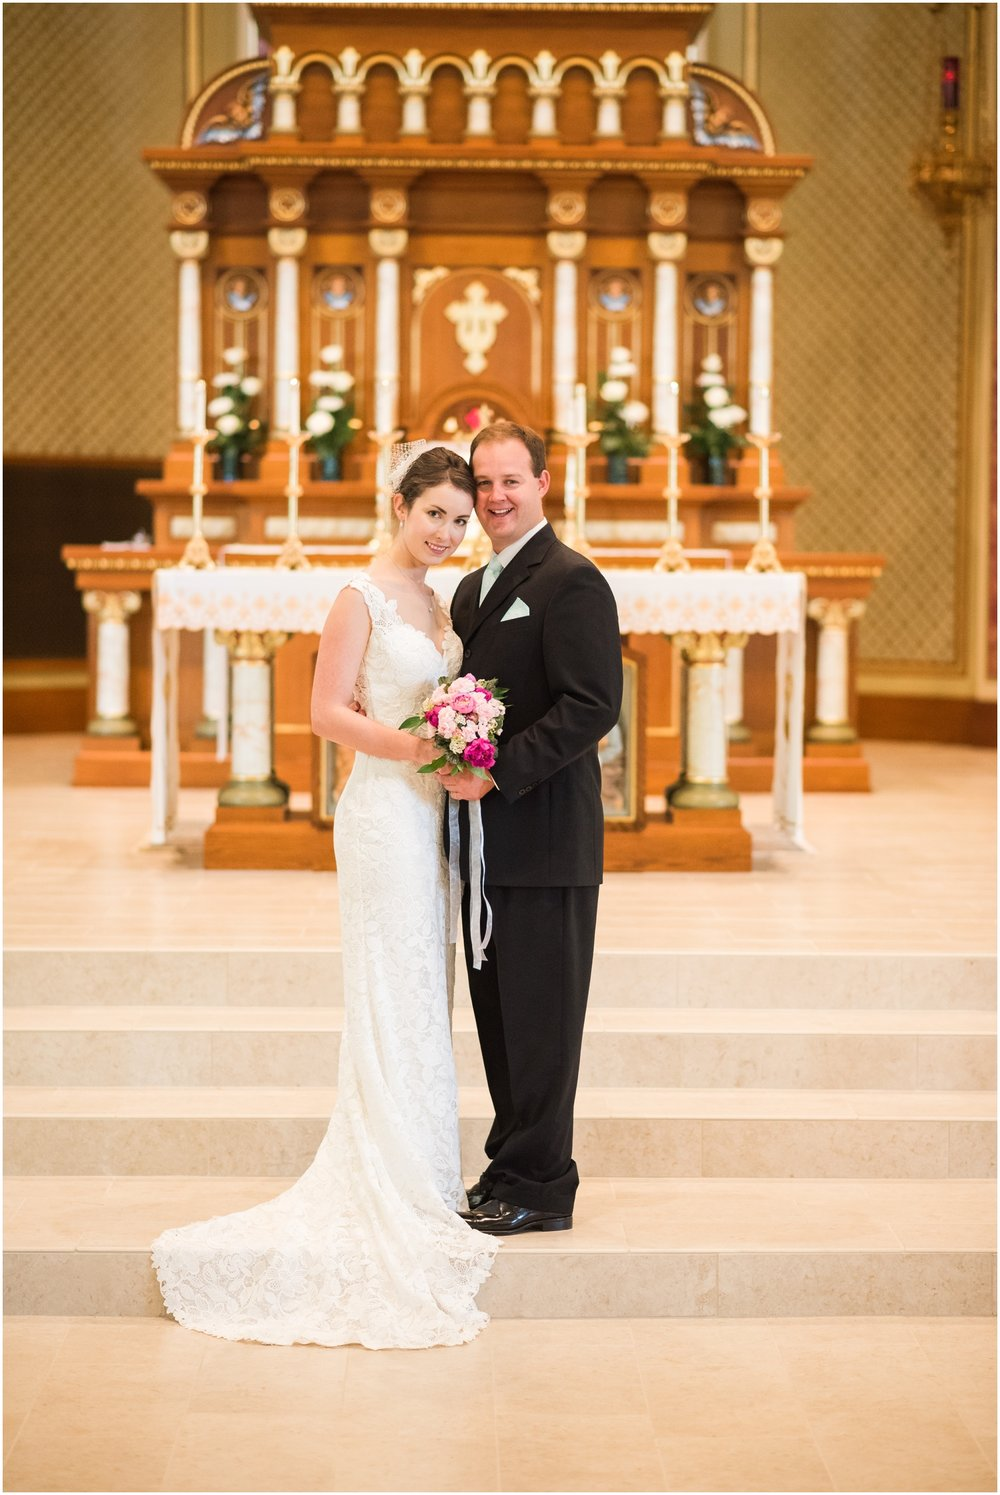 WISCONSIN DELLS WEDDING PHOTOGRAPHER | ST. CECILIA CATHOLIC CHURCH | WISCONSIN DELLS, WI | WEDDING_0248.jpg